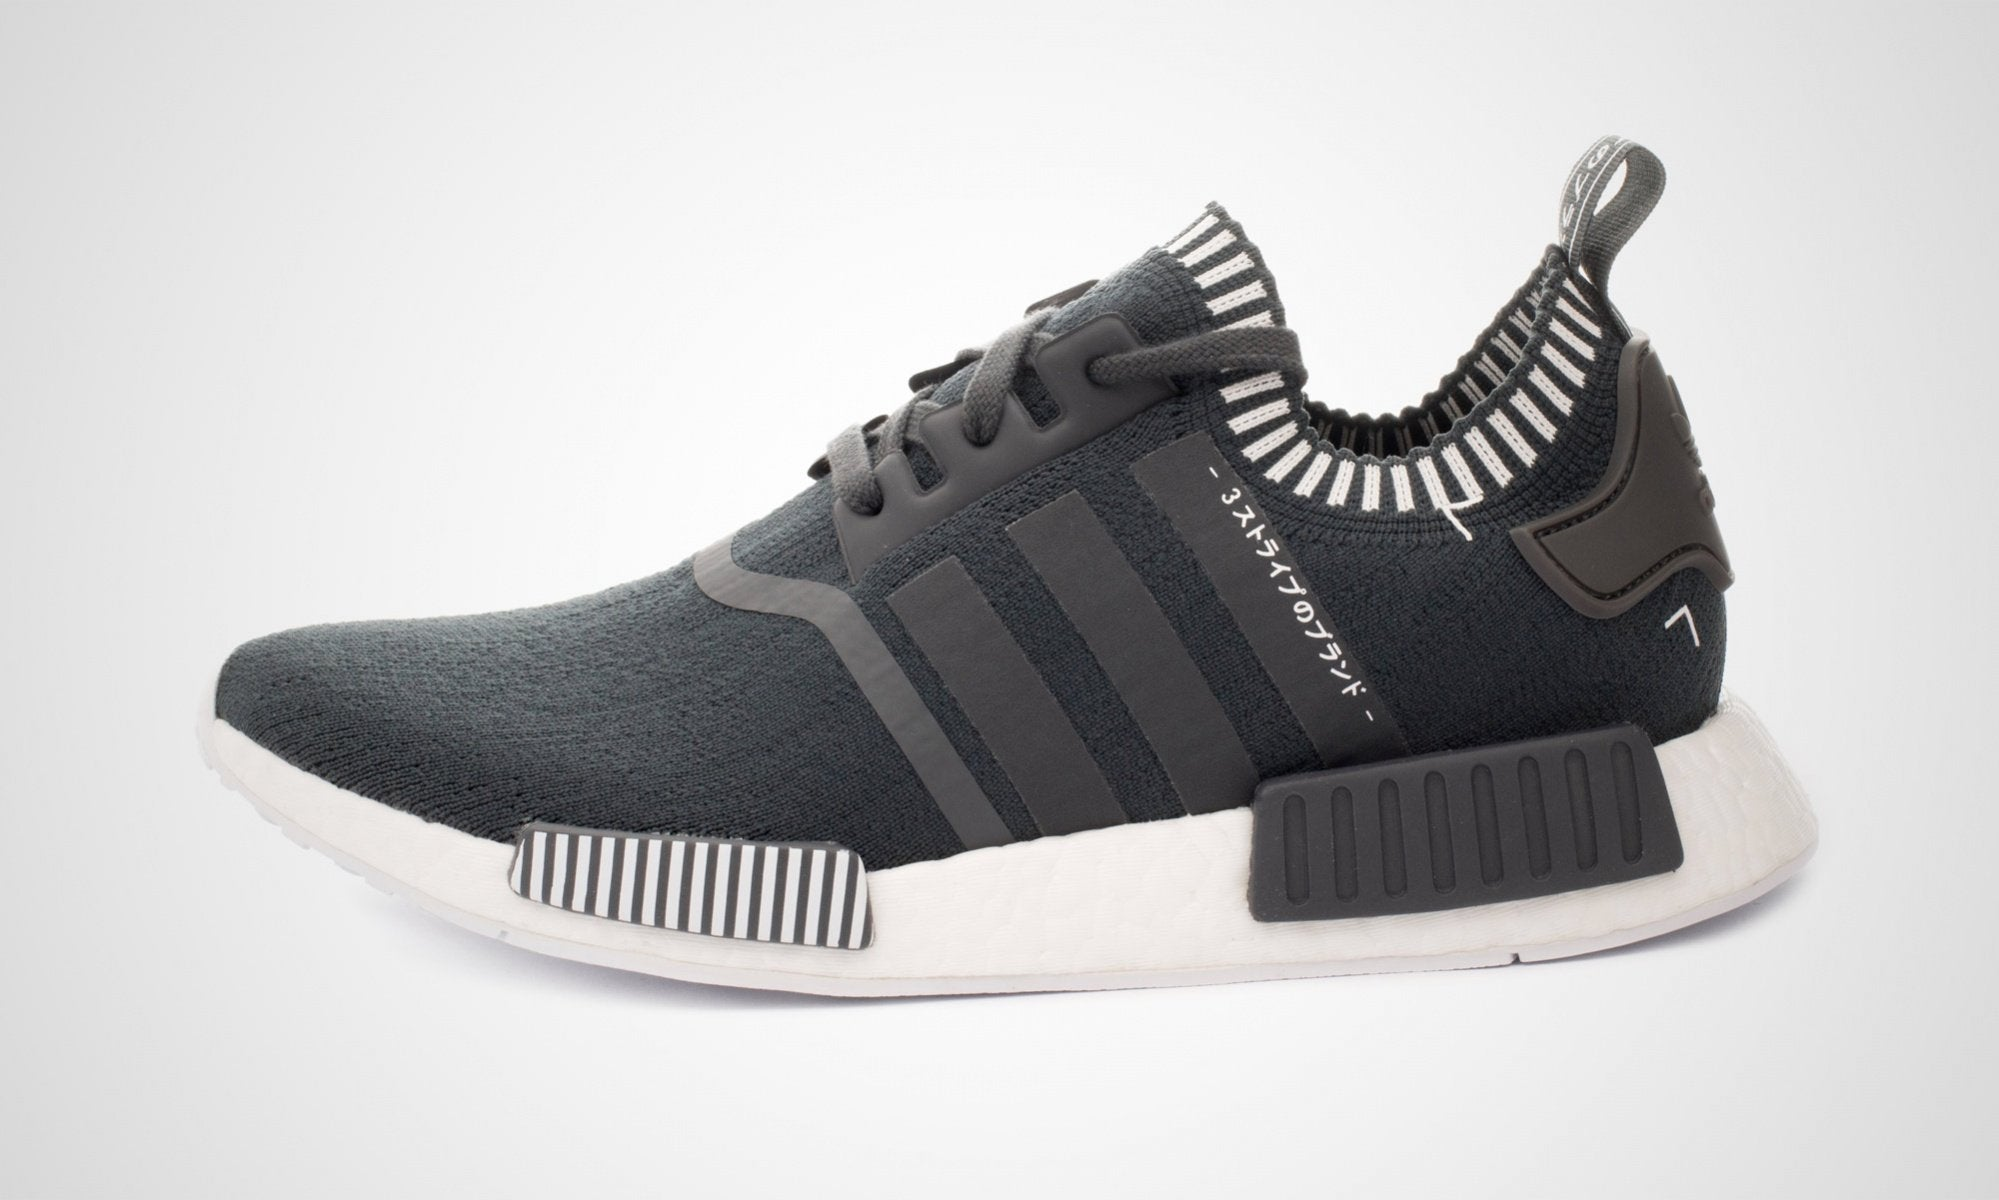 62df910c1 Japan Grey NMD R1 PK - DistriSneaks